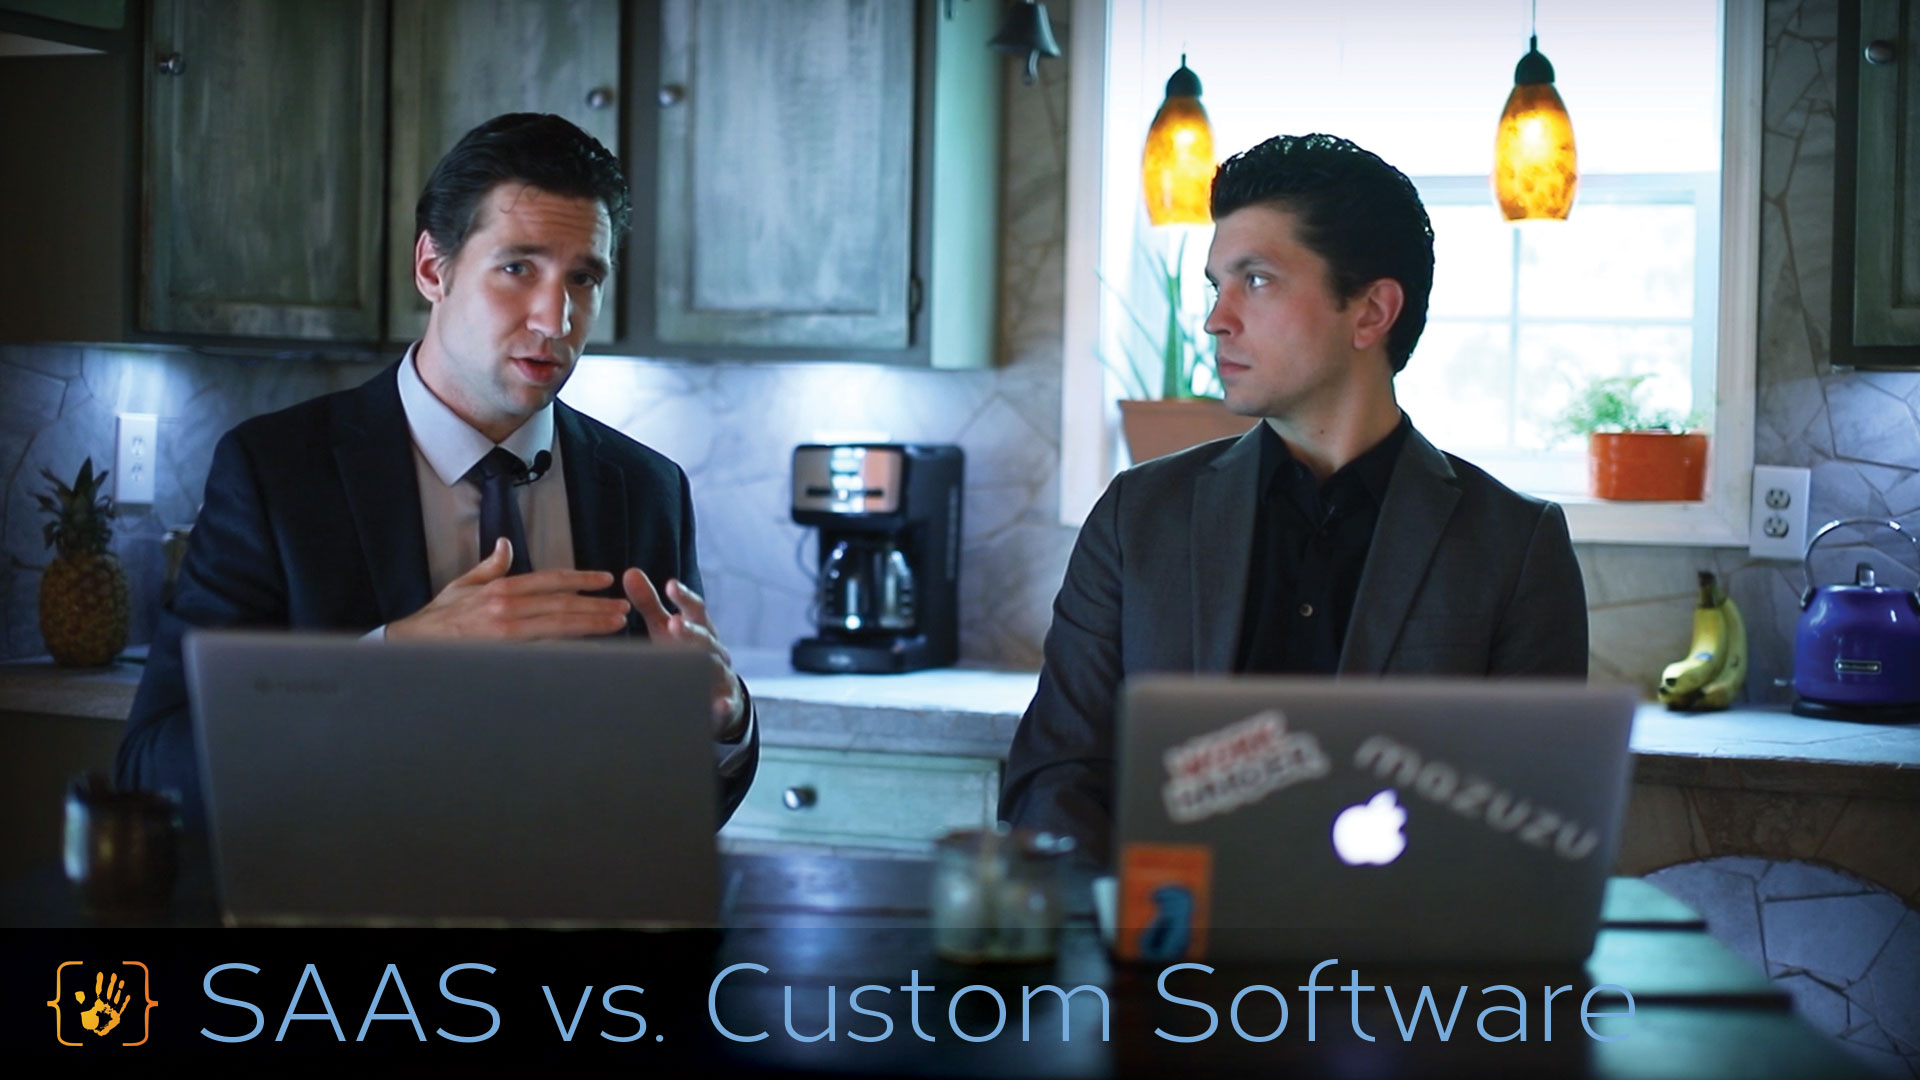 Watch SAAS vs Custom Software. When and why on Youtube